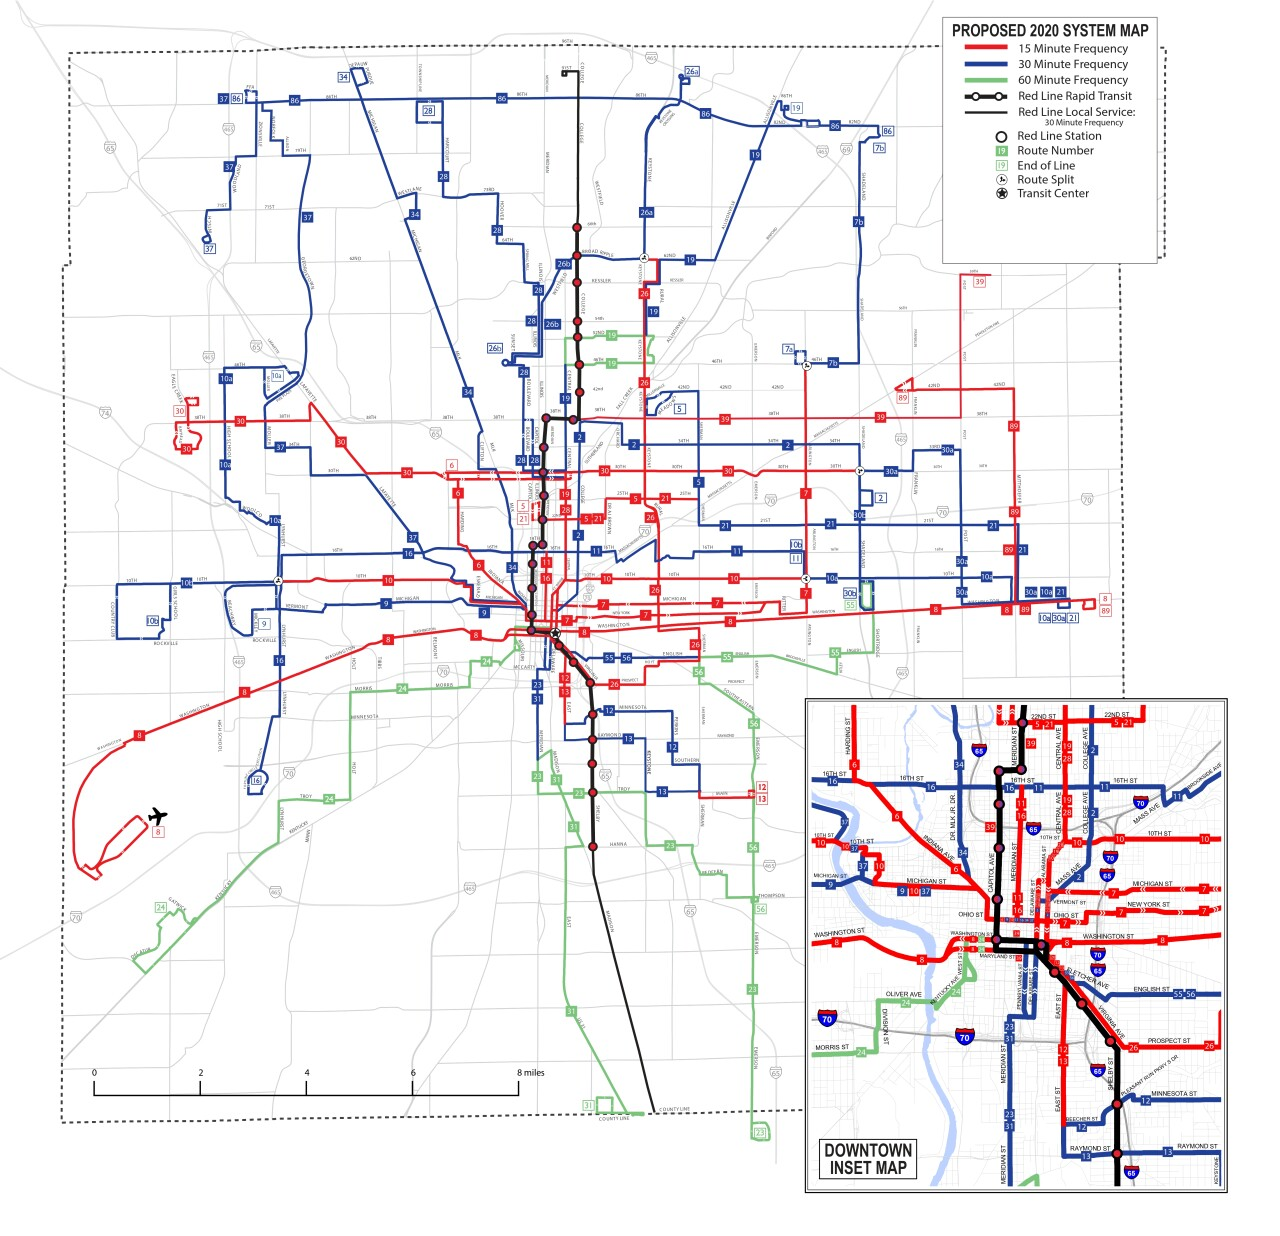 Updated-2020-System-Map-with-Downtown-inset-012820_page-0001.jpg